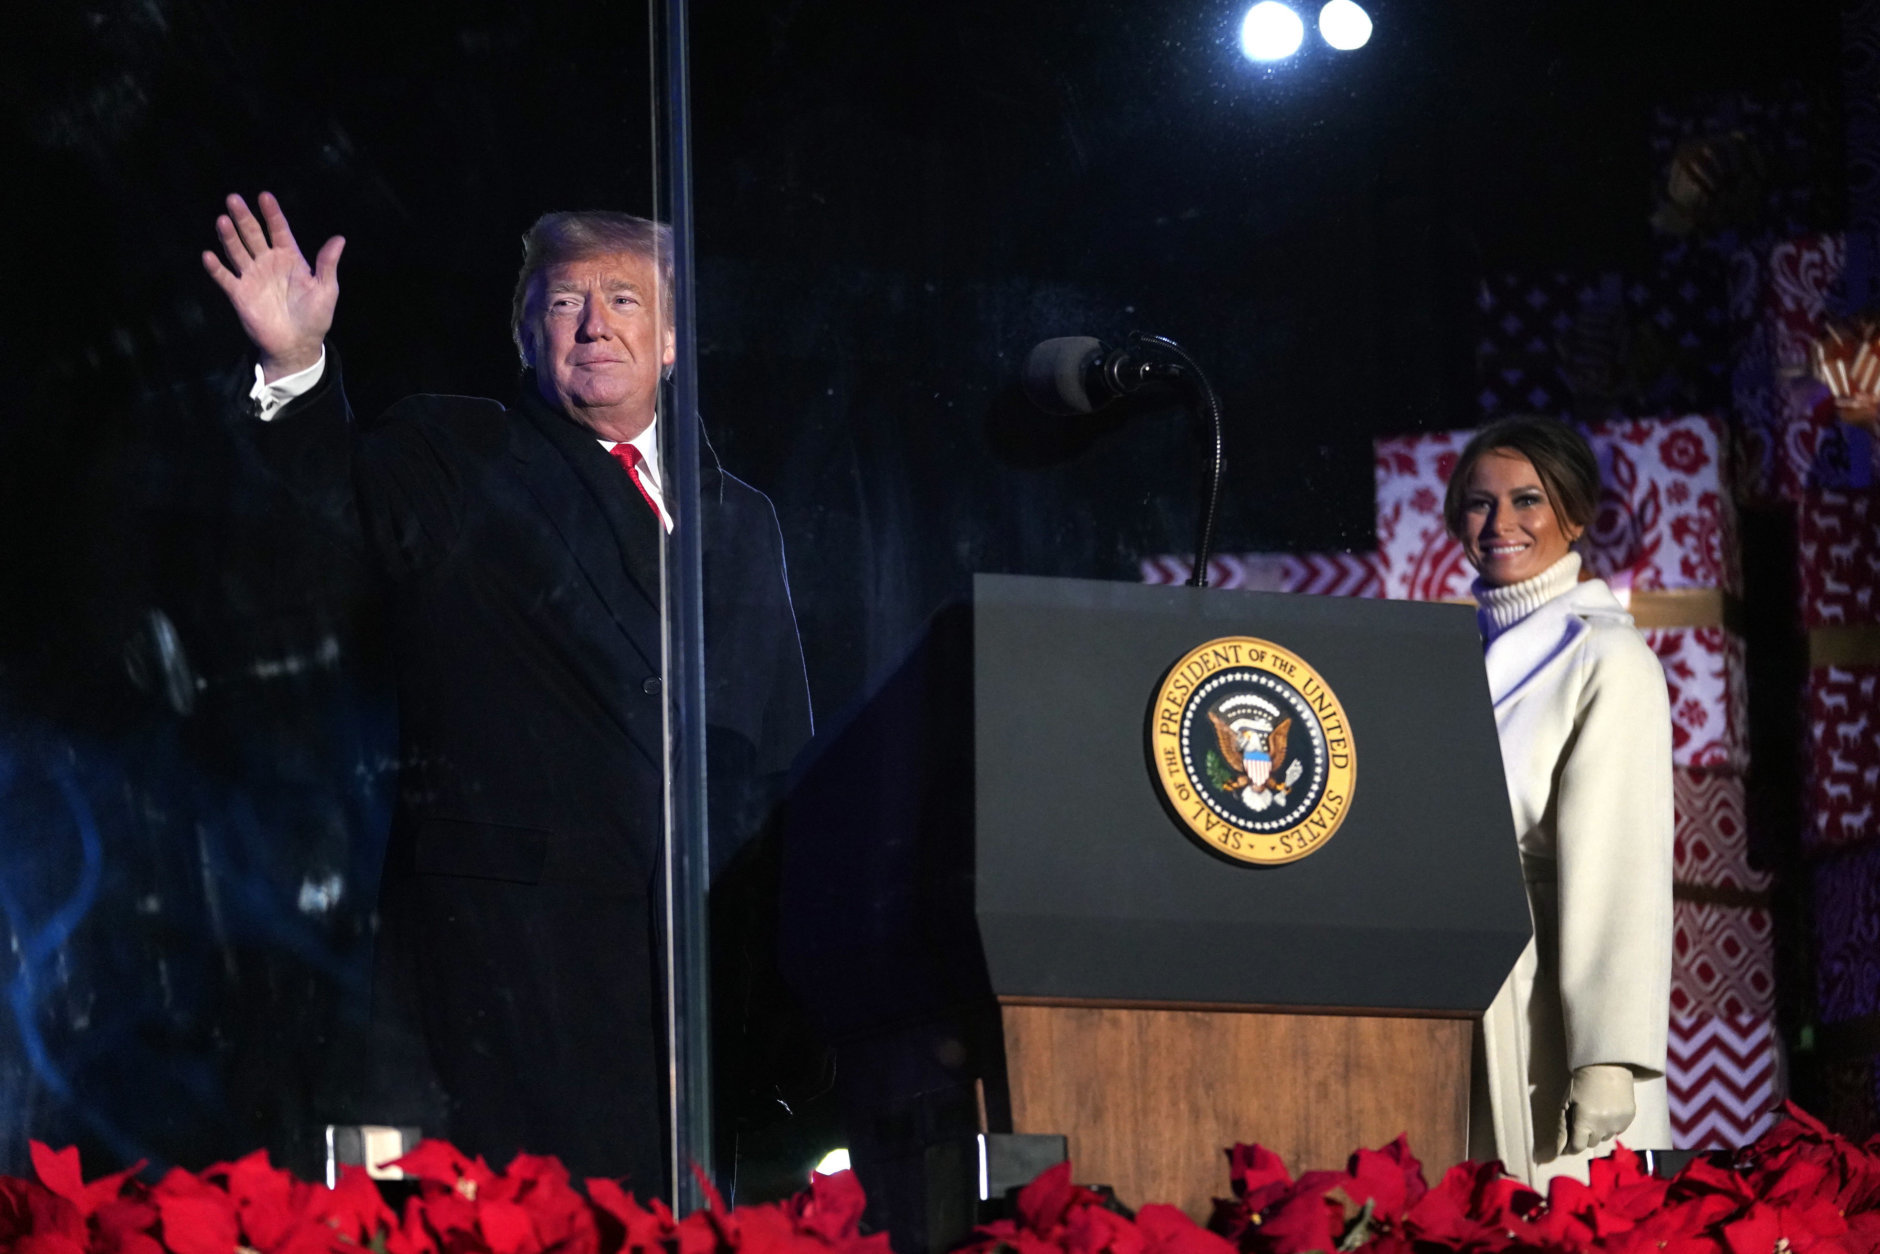 President Donald Trump and first lady Melania Trump wave during the National Christmas Tree lighting ceremony at the Ellipse near the White House in Washington, Wednesday, Nov. 28, 2018. (AP Photo/Andrew Harnik)